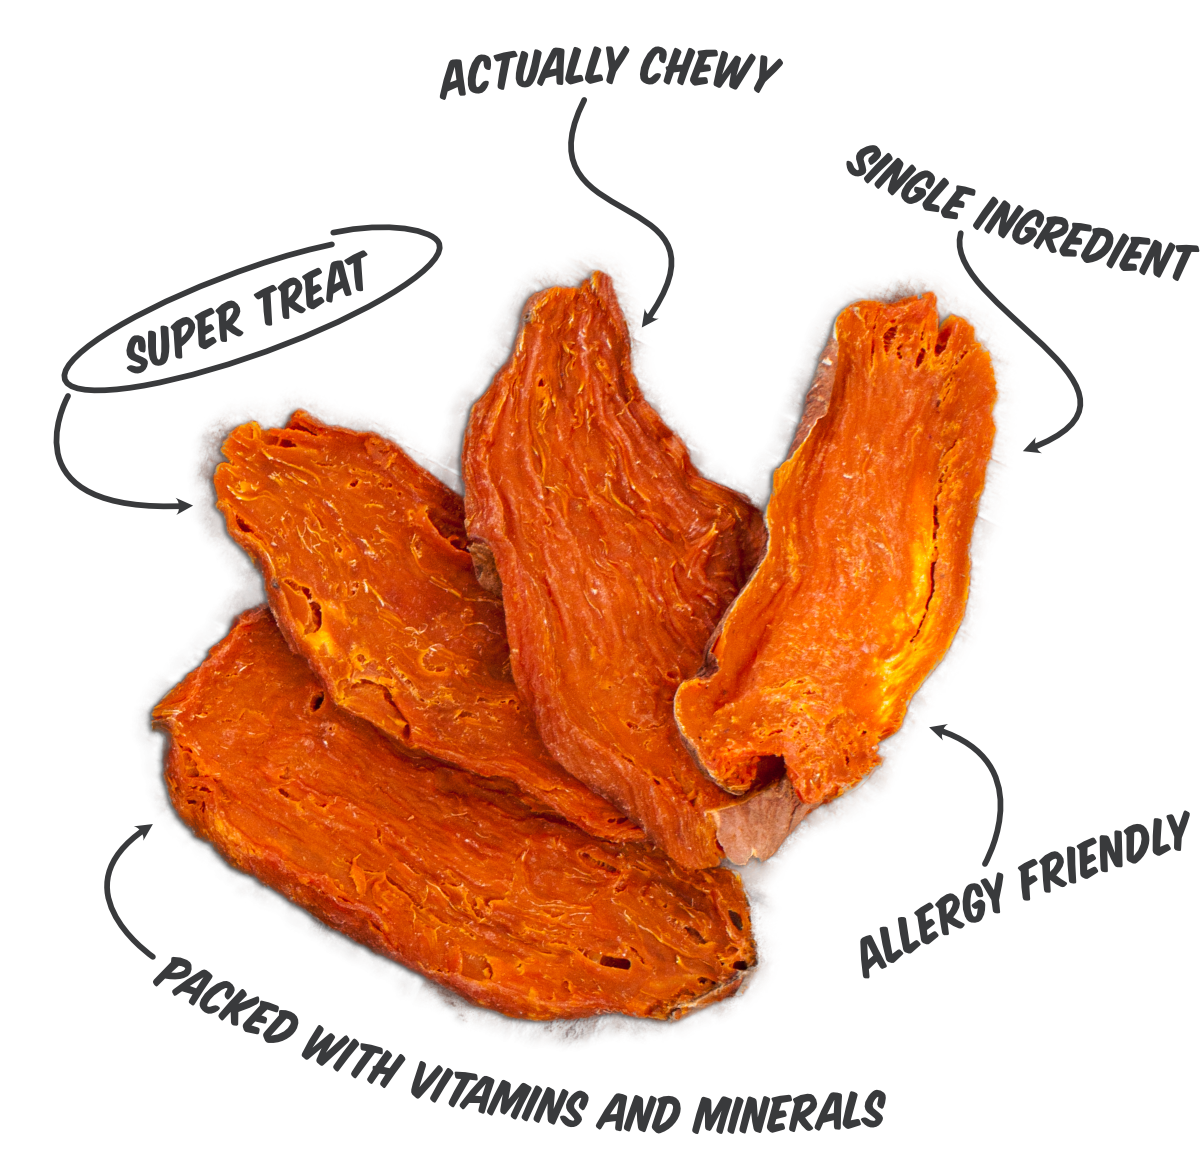 Kahoots sweet potato with features